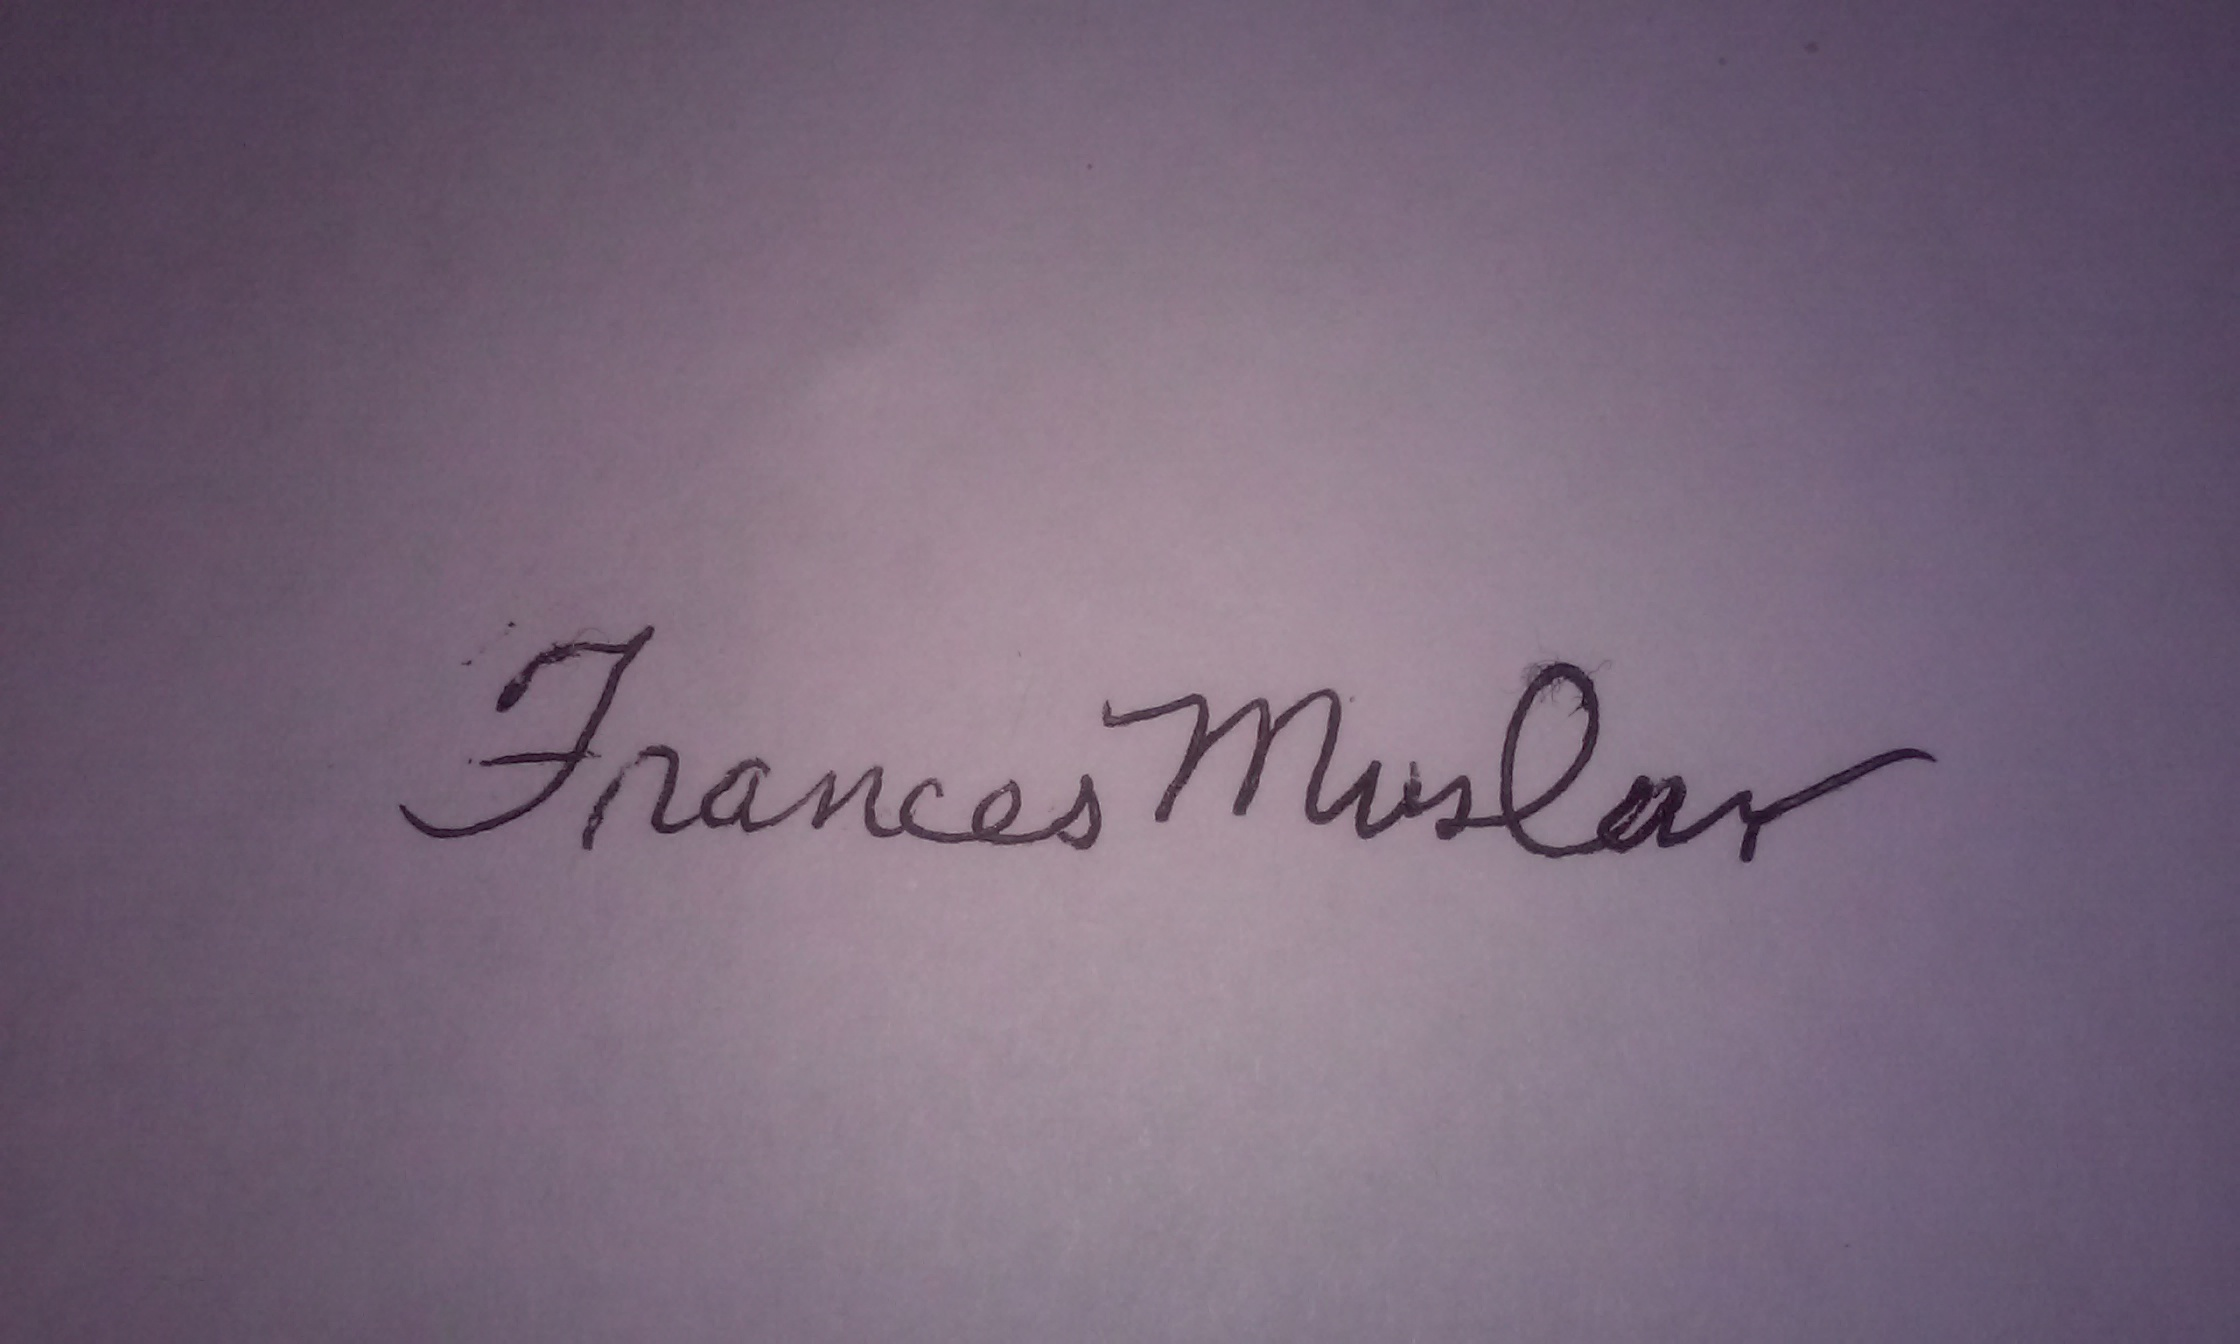 Frances Muslar Signature